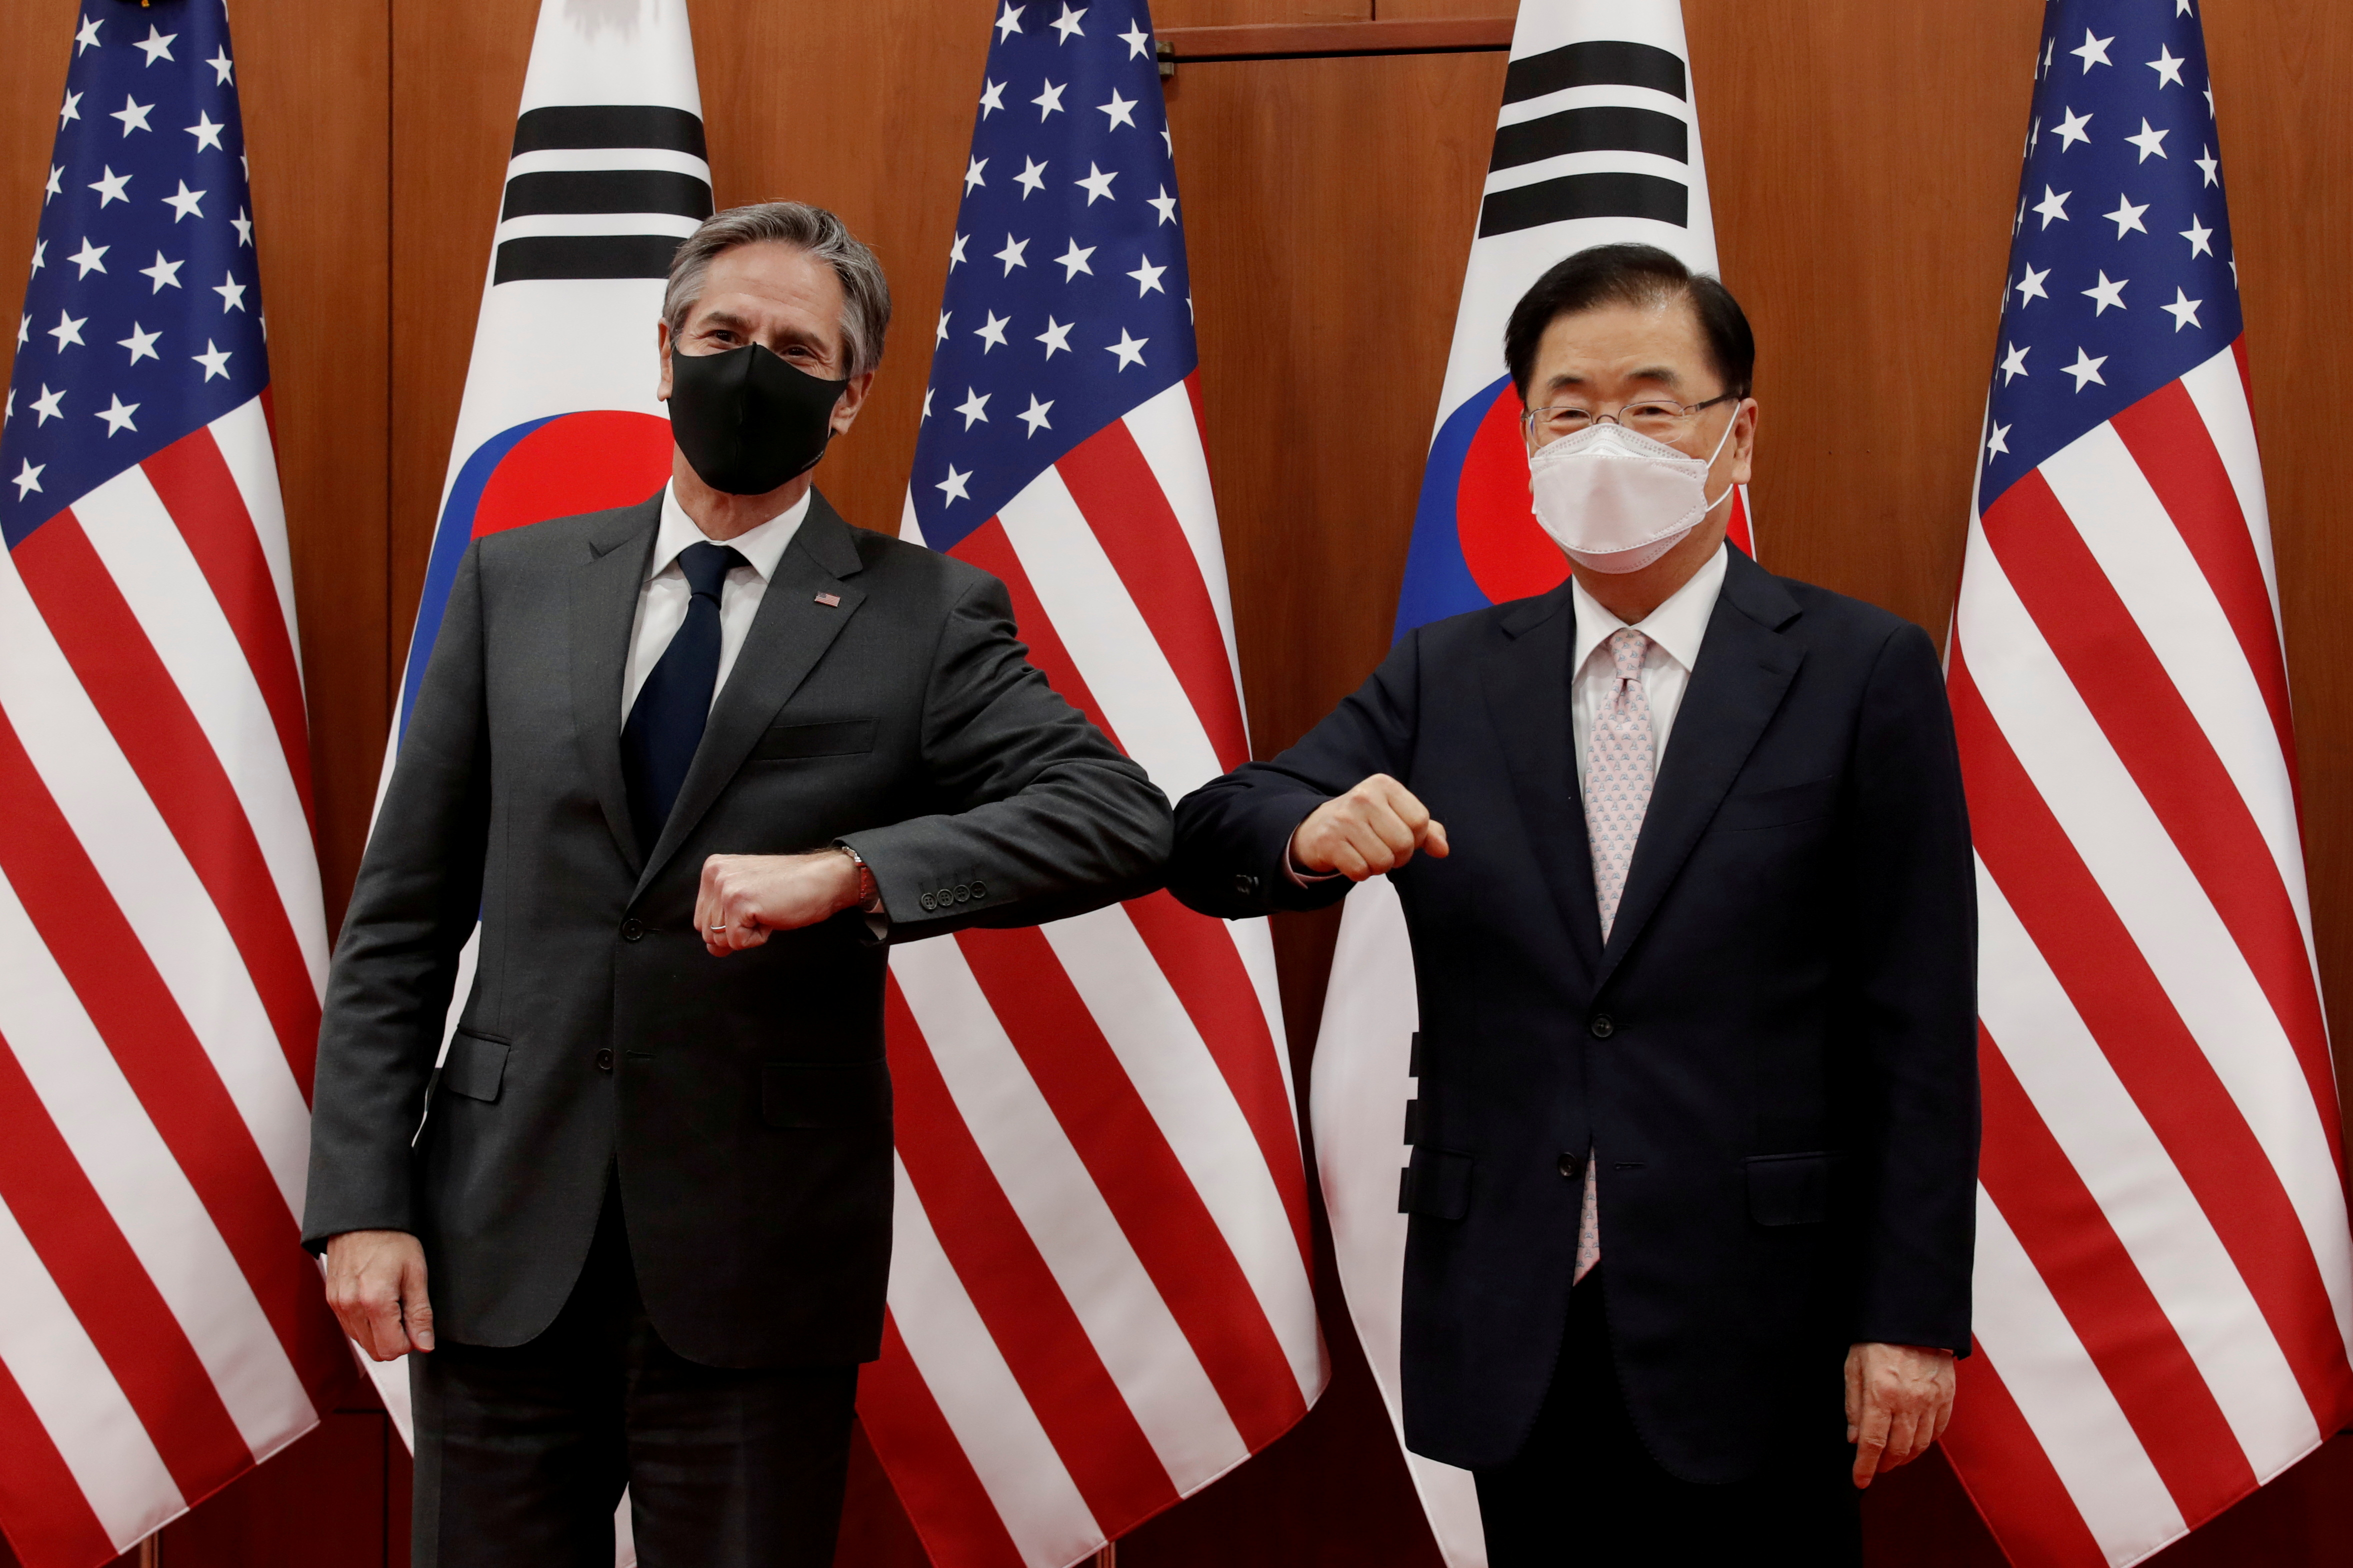 U.S. Secretary of State Antony Blinken, left, and South Korean Foreign Minister Chung Eui-yong pose for the media before their meeting at the Foreign Ministry in Seoul, South Korea March 17, 2021. Lee Jin-man/Pool via REUTERS